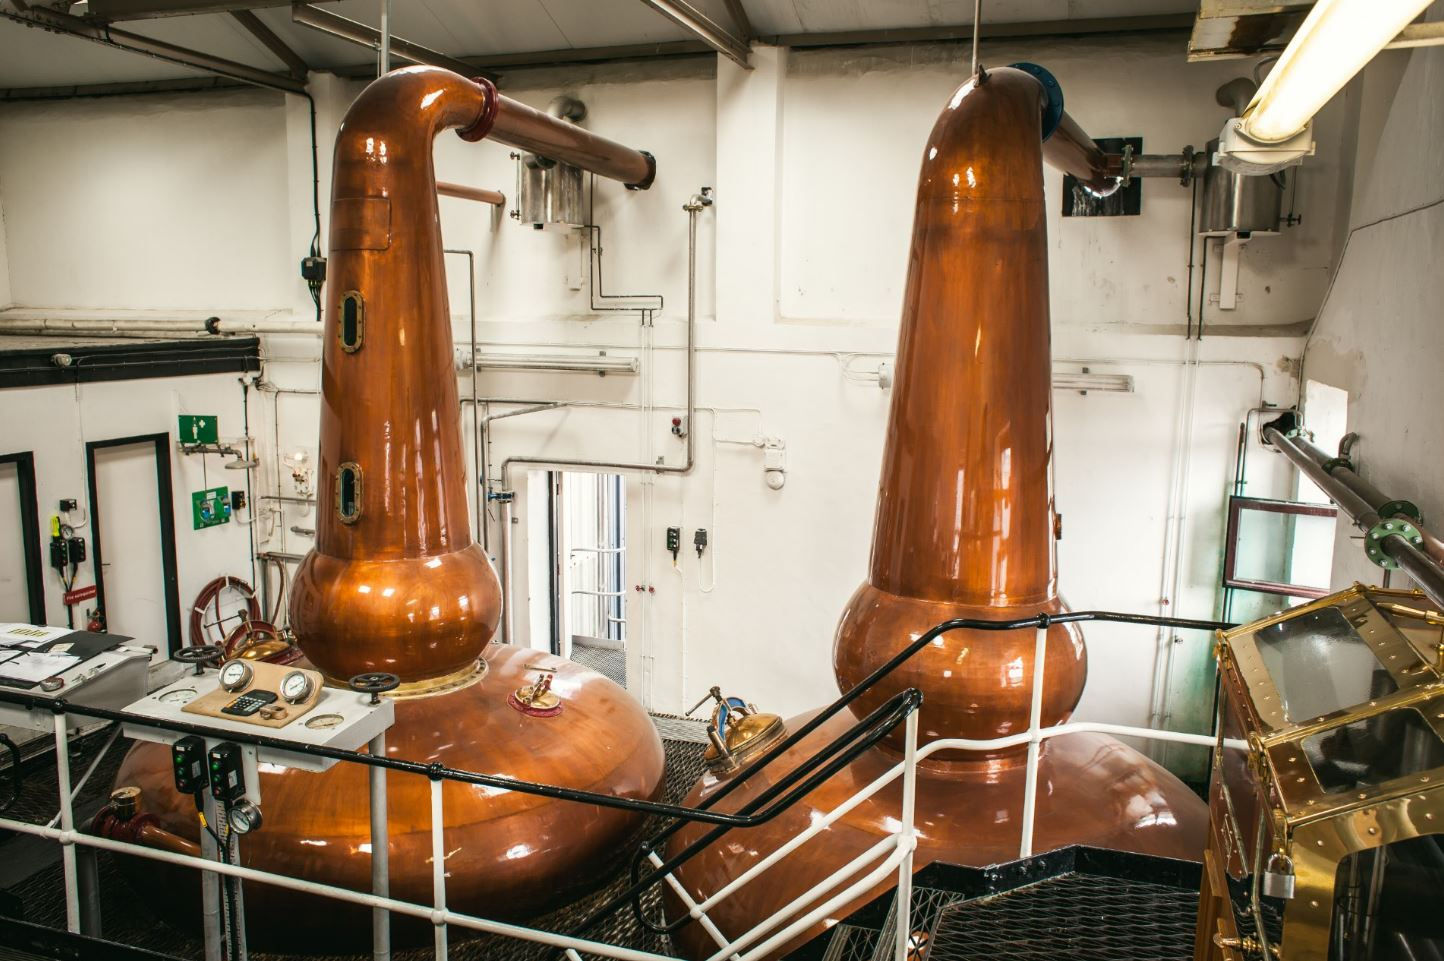 Copper Stills in Still Room at Knockdhu Distillery